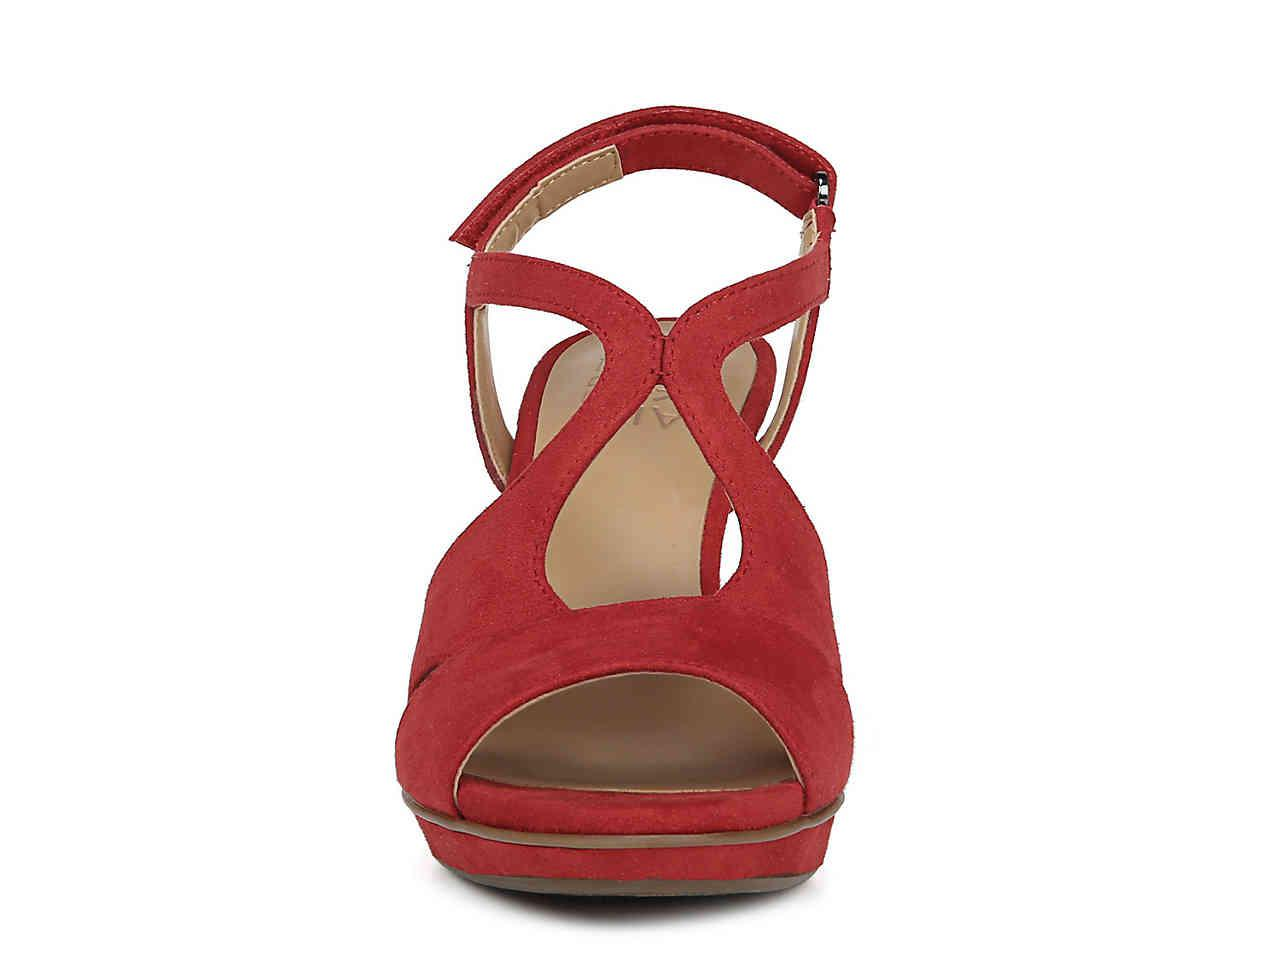 73b84922adf7 Lyst - Naturalizer Dacey Platform Sandal in Red